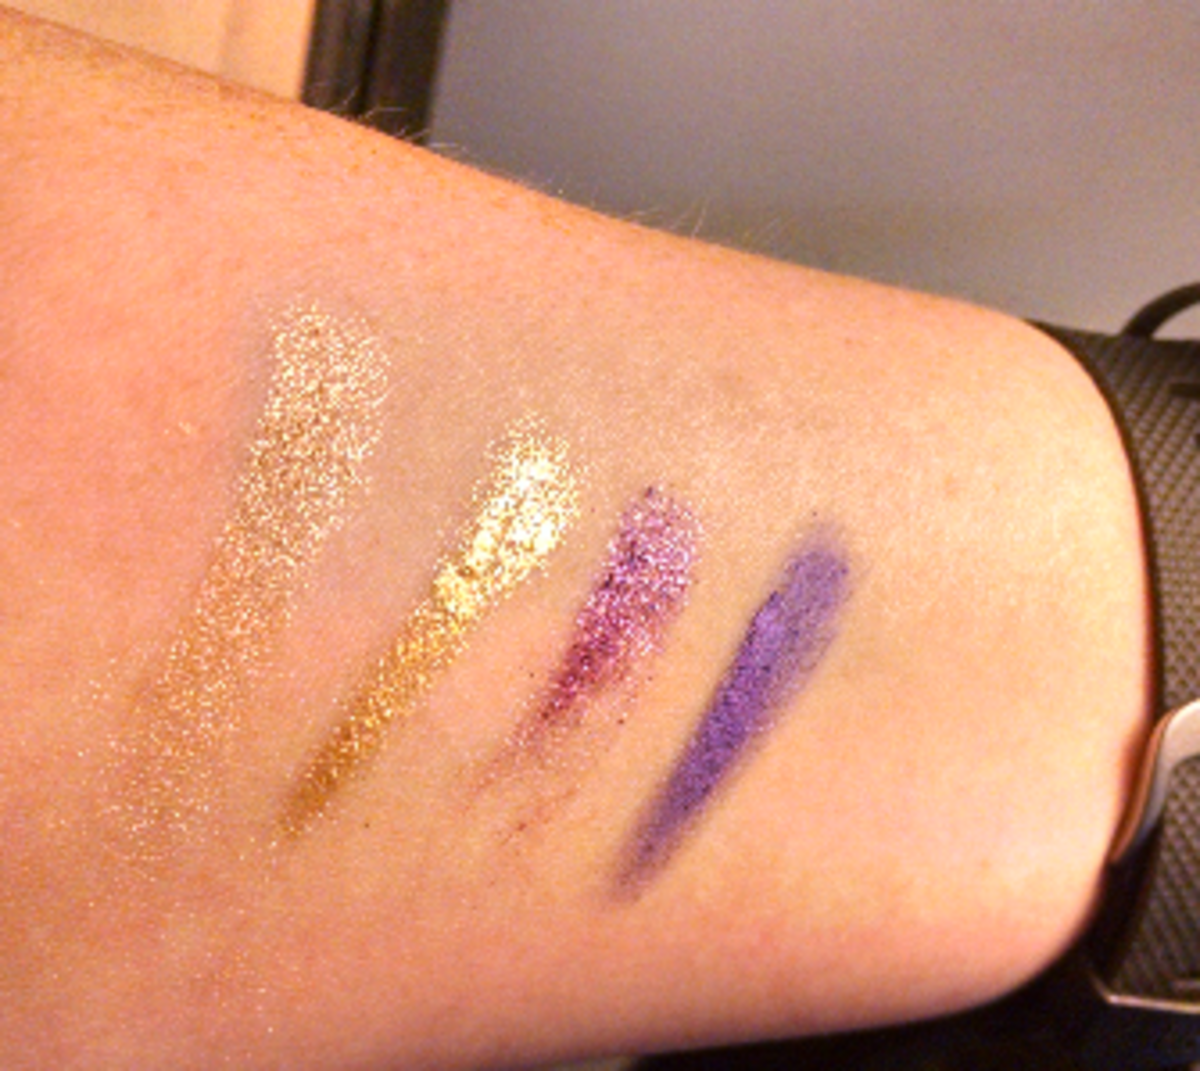 From left to right: L'Oreal's Amber Rush, Maybelline's Bold Gold, L'Oreal's Burst into Bloom, & Maybelline's Painted Purple